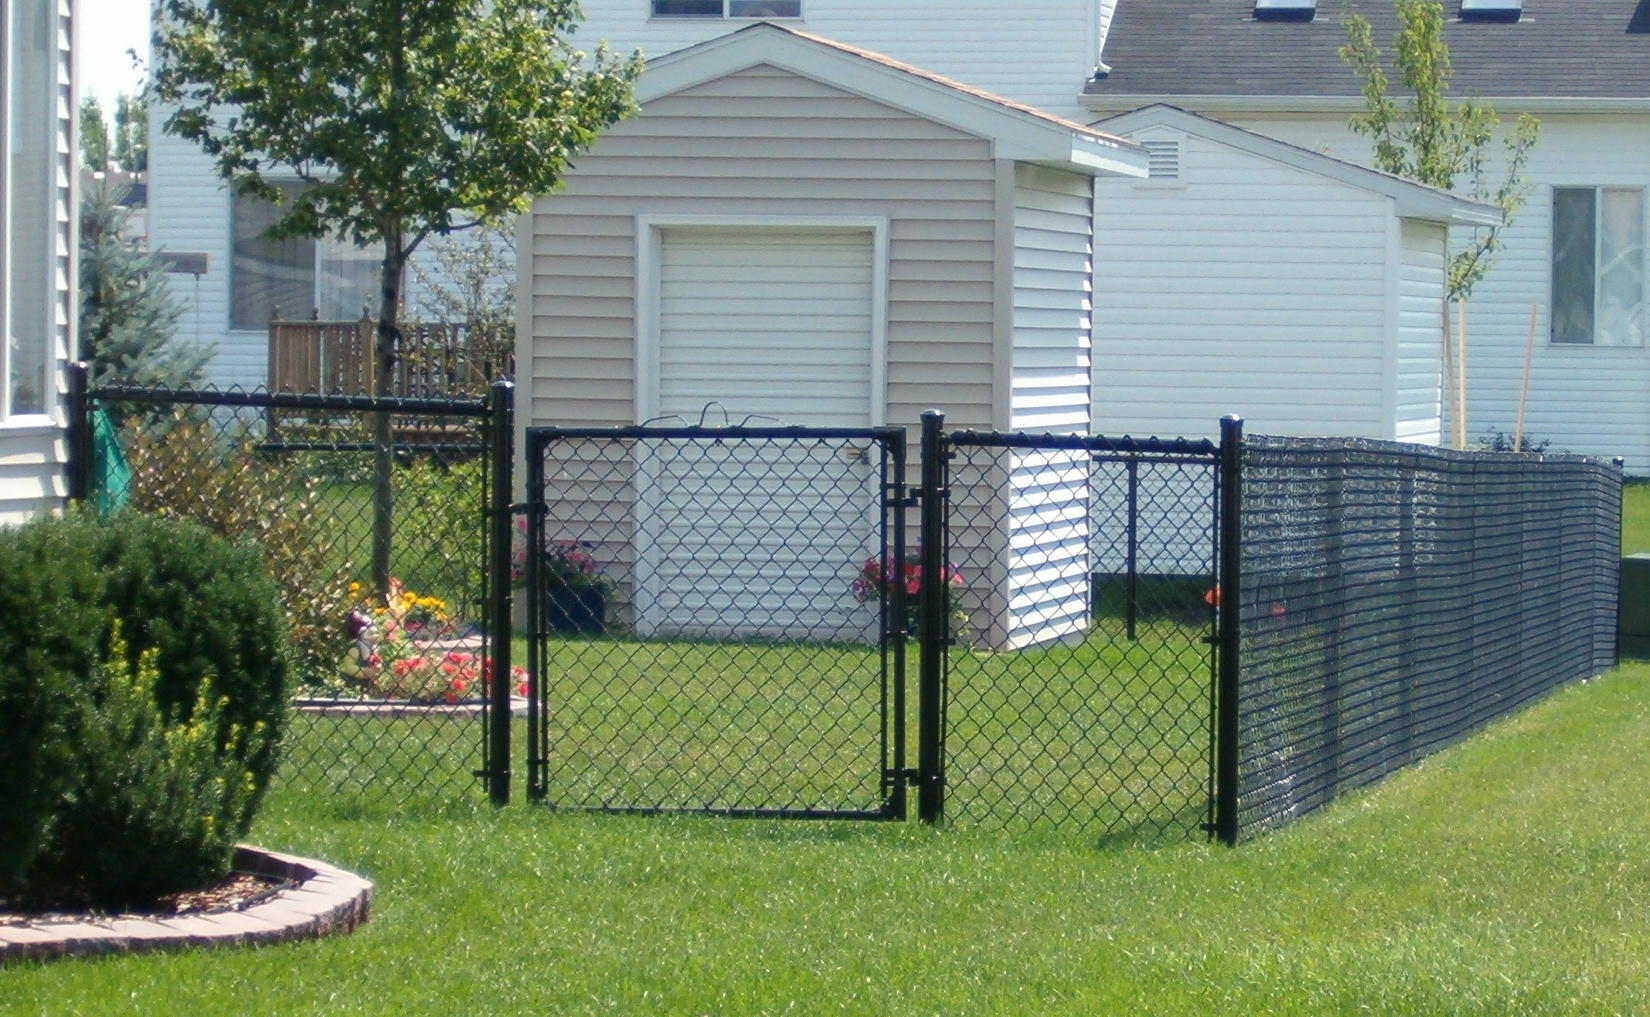 Privacy screen for chain link fence sears - Chain Link Fences Todayu0027s Residential